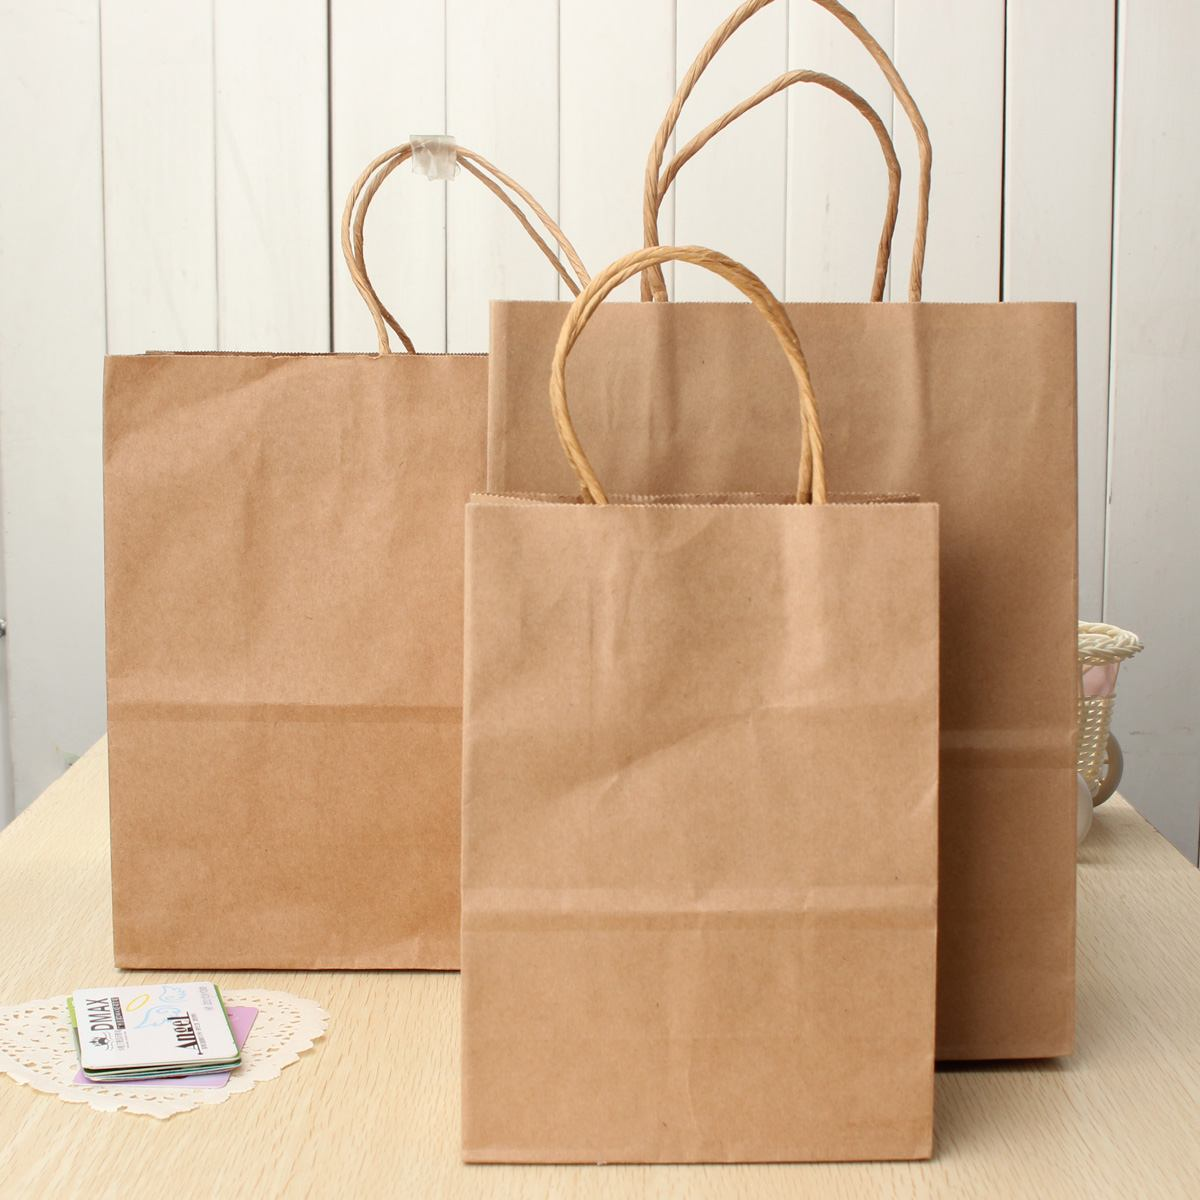 1 Pc Kraft Paper Bag With Handles Gift Bag Recyclable Bag For Fashionable Clothes Shoes Gift Shops 3 Size Cowhide